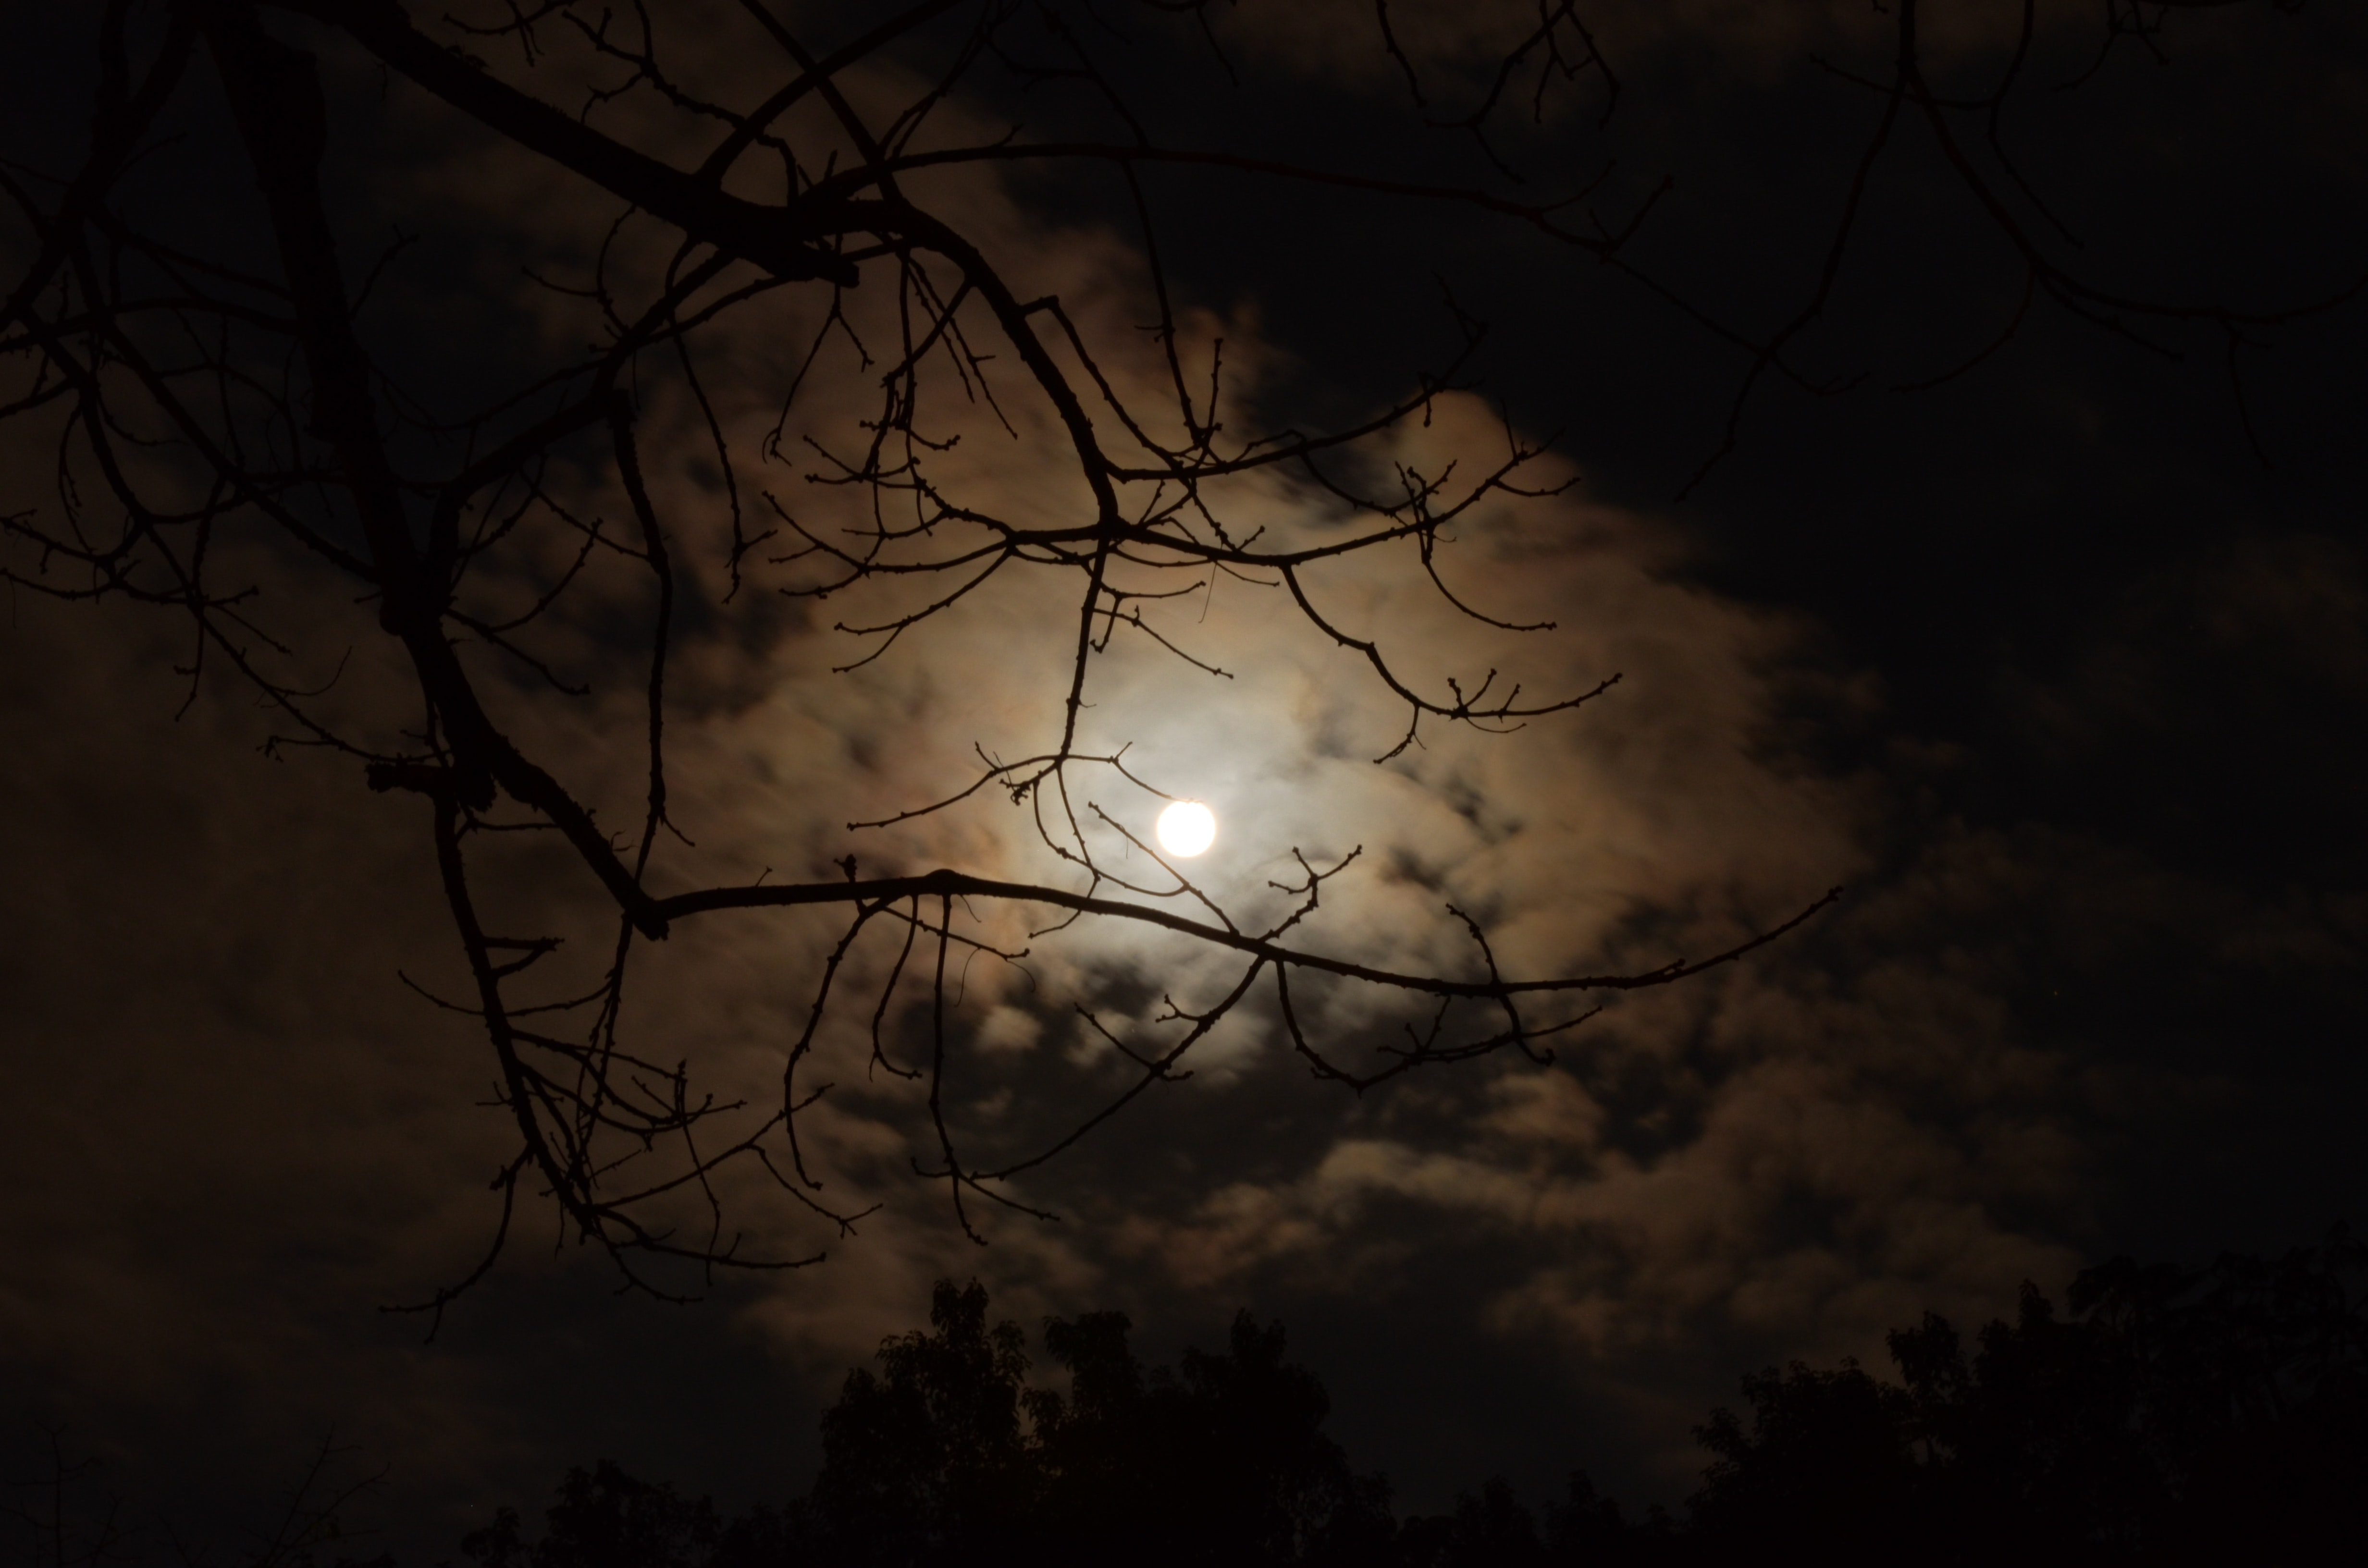 Silhouette of Tree Branch Under White Cloudy Skies during Nighttime, Art, Misty, Twilight, Tree branches, HQ Photo